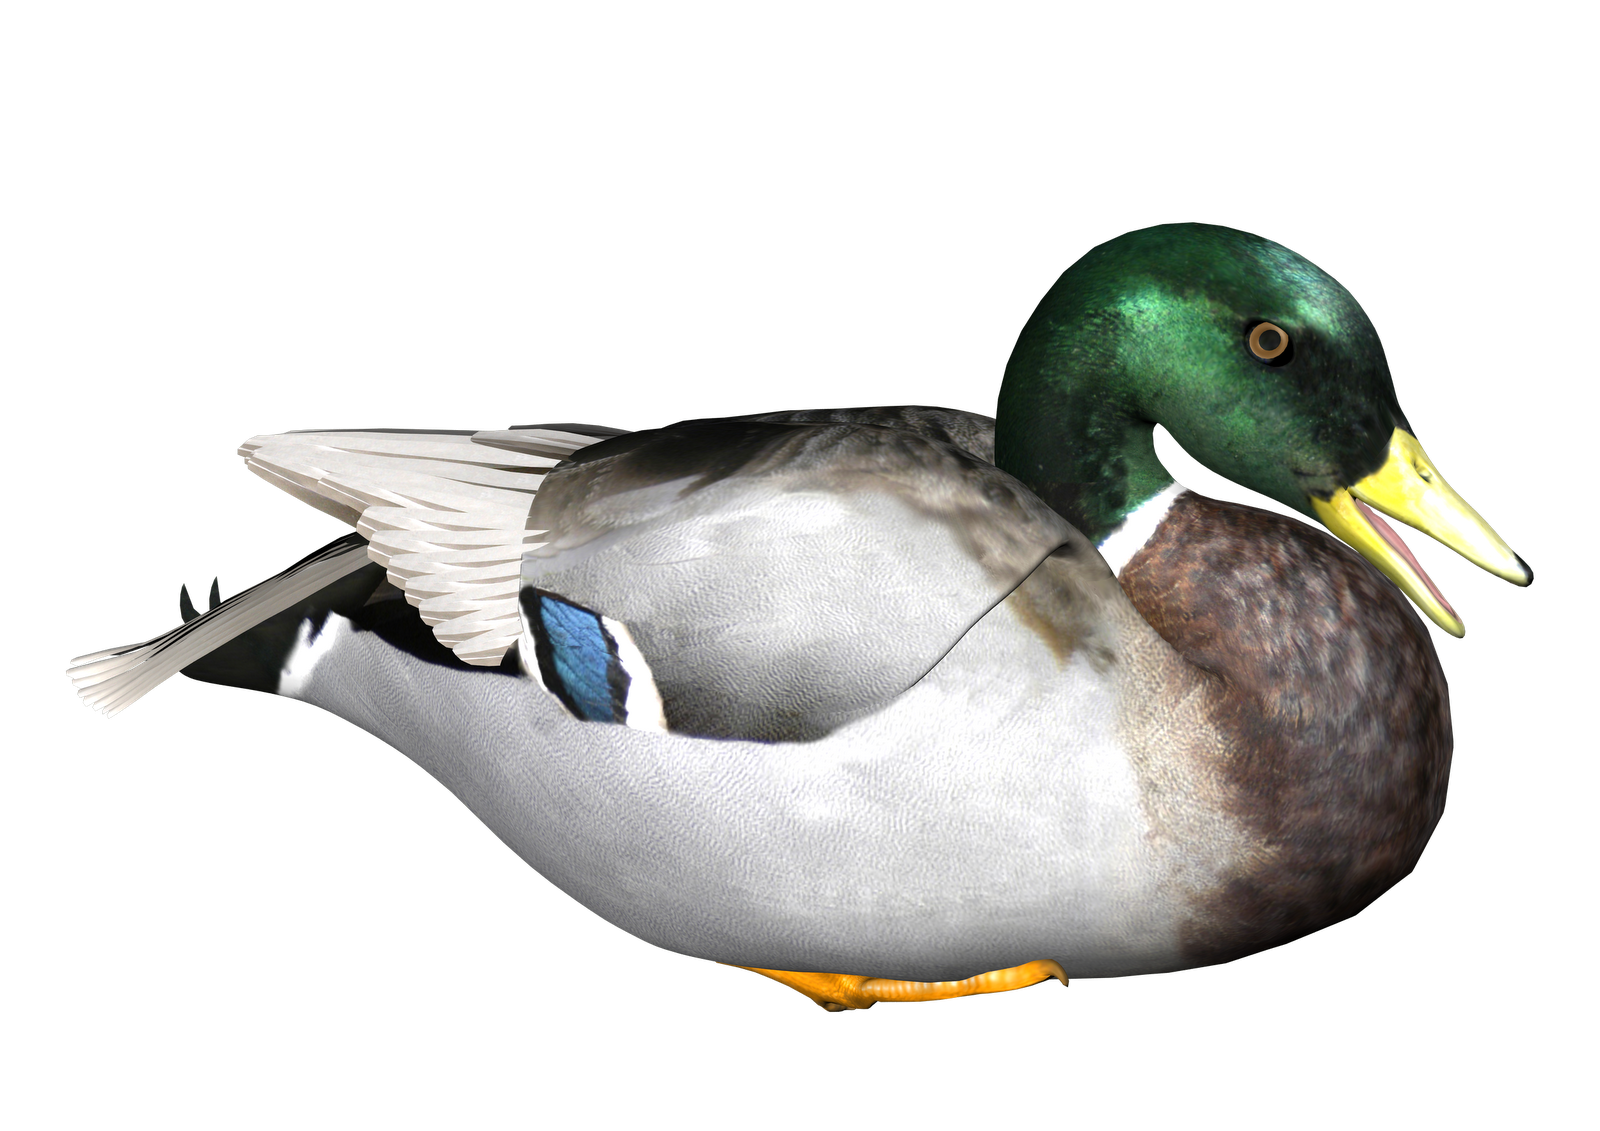 Duck Transparent Background - Duck PNG